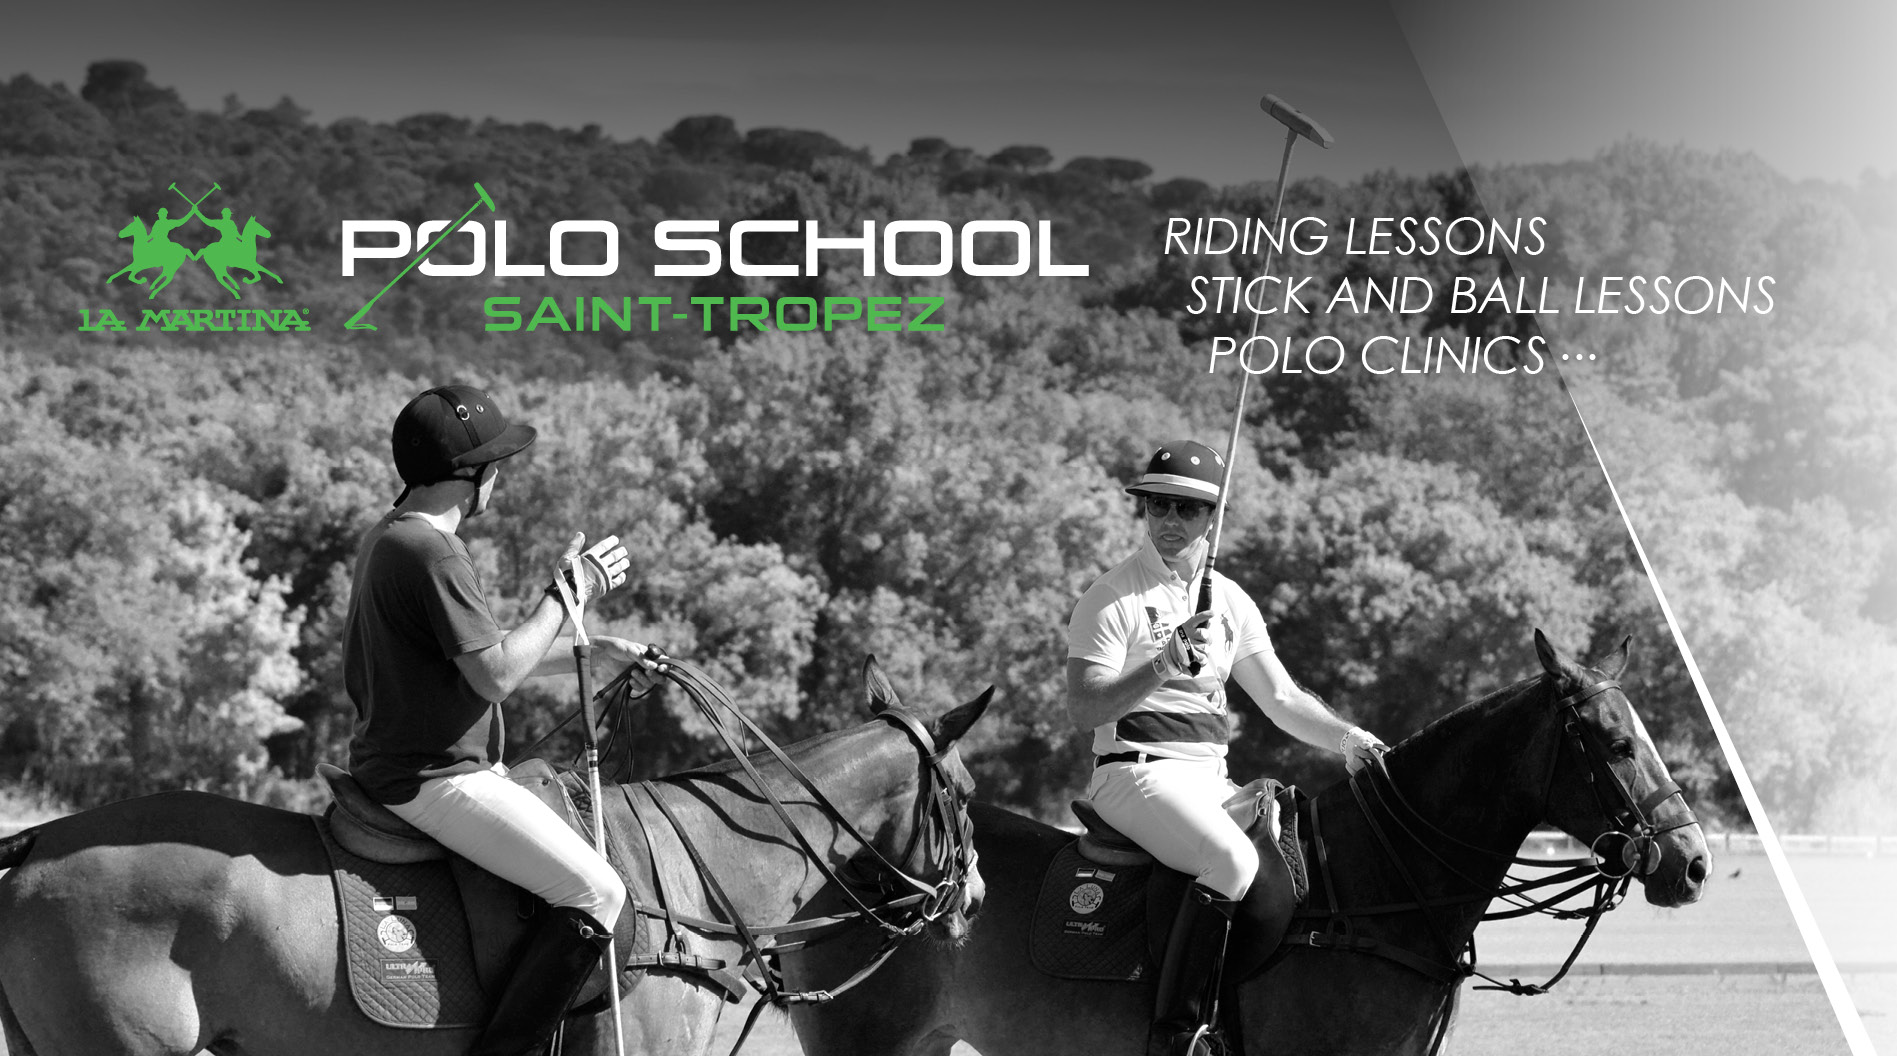 POLO SCHOOL... COME AND JOIN US !